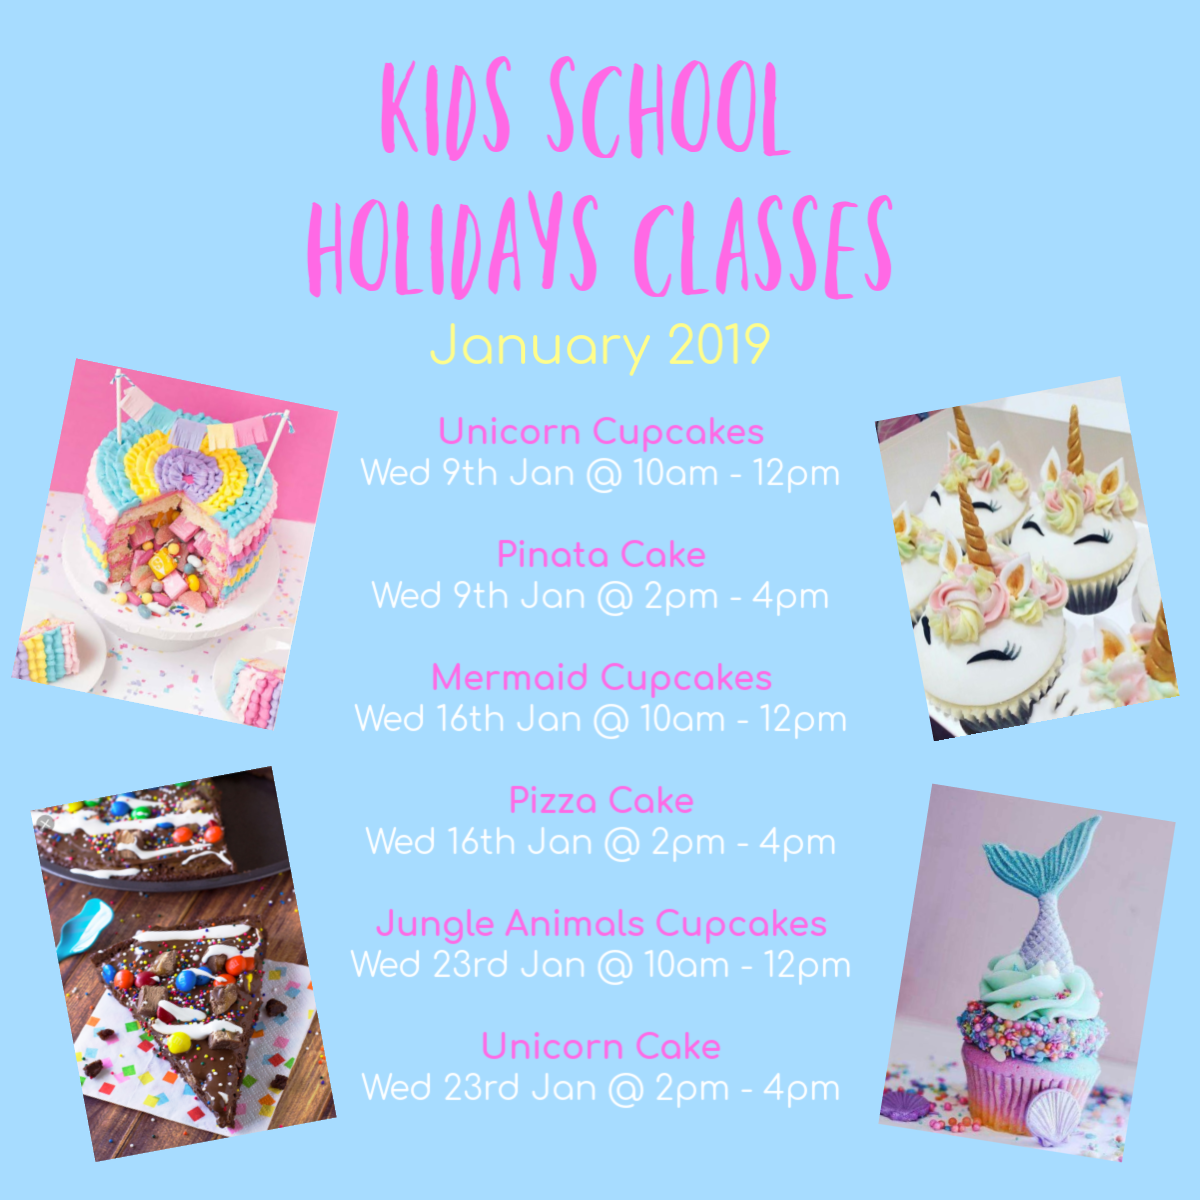 school-holidays-classes-1-57868.1544345105.1280.1280.png